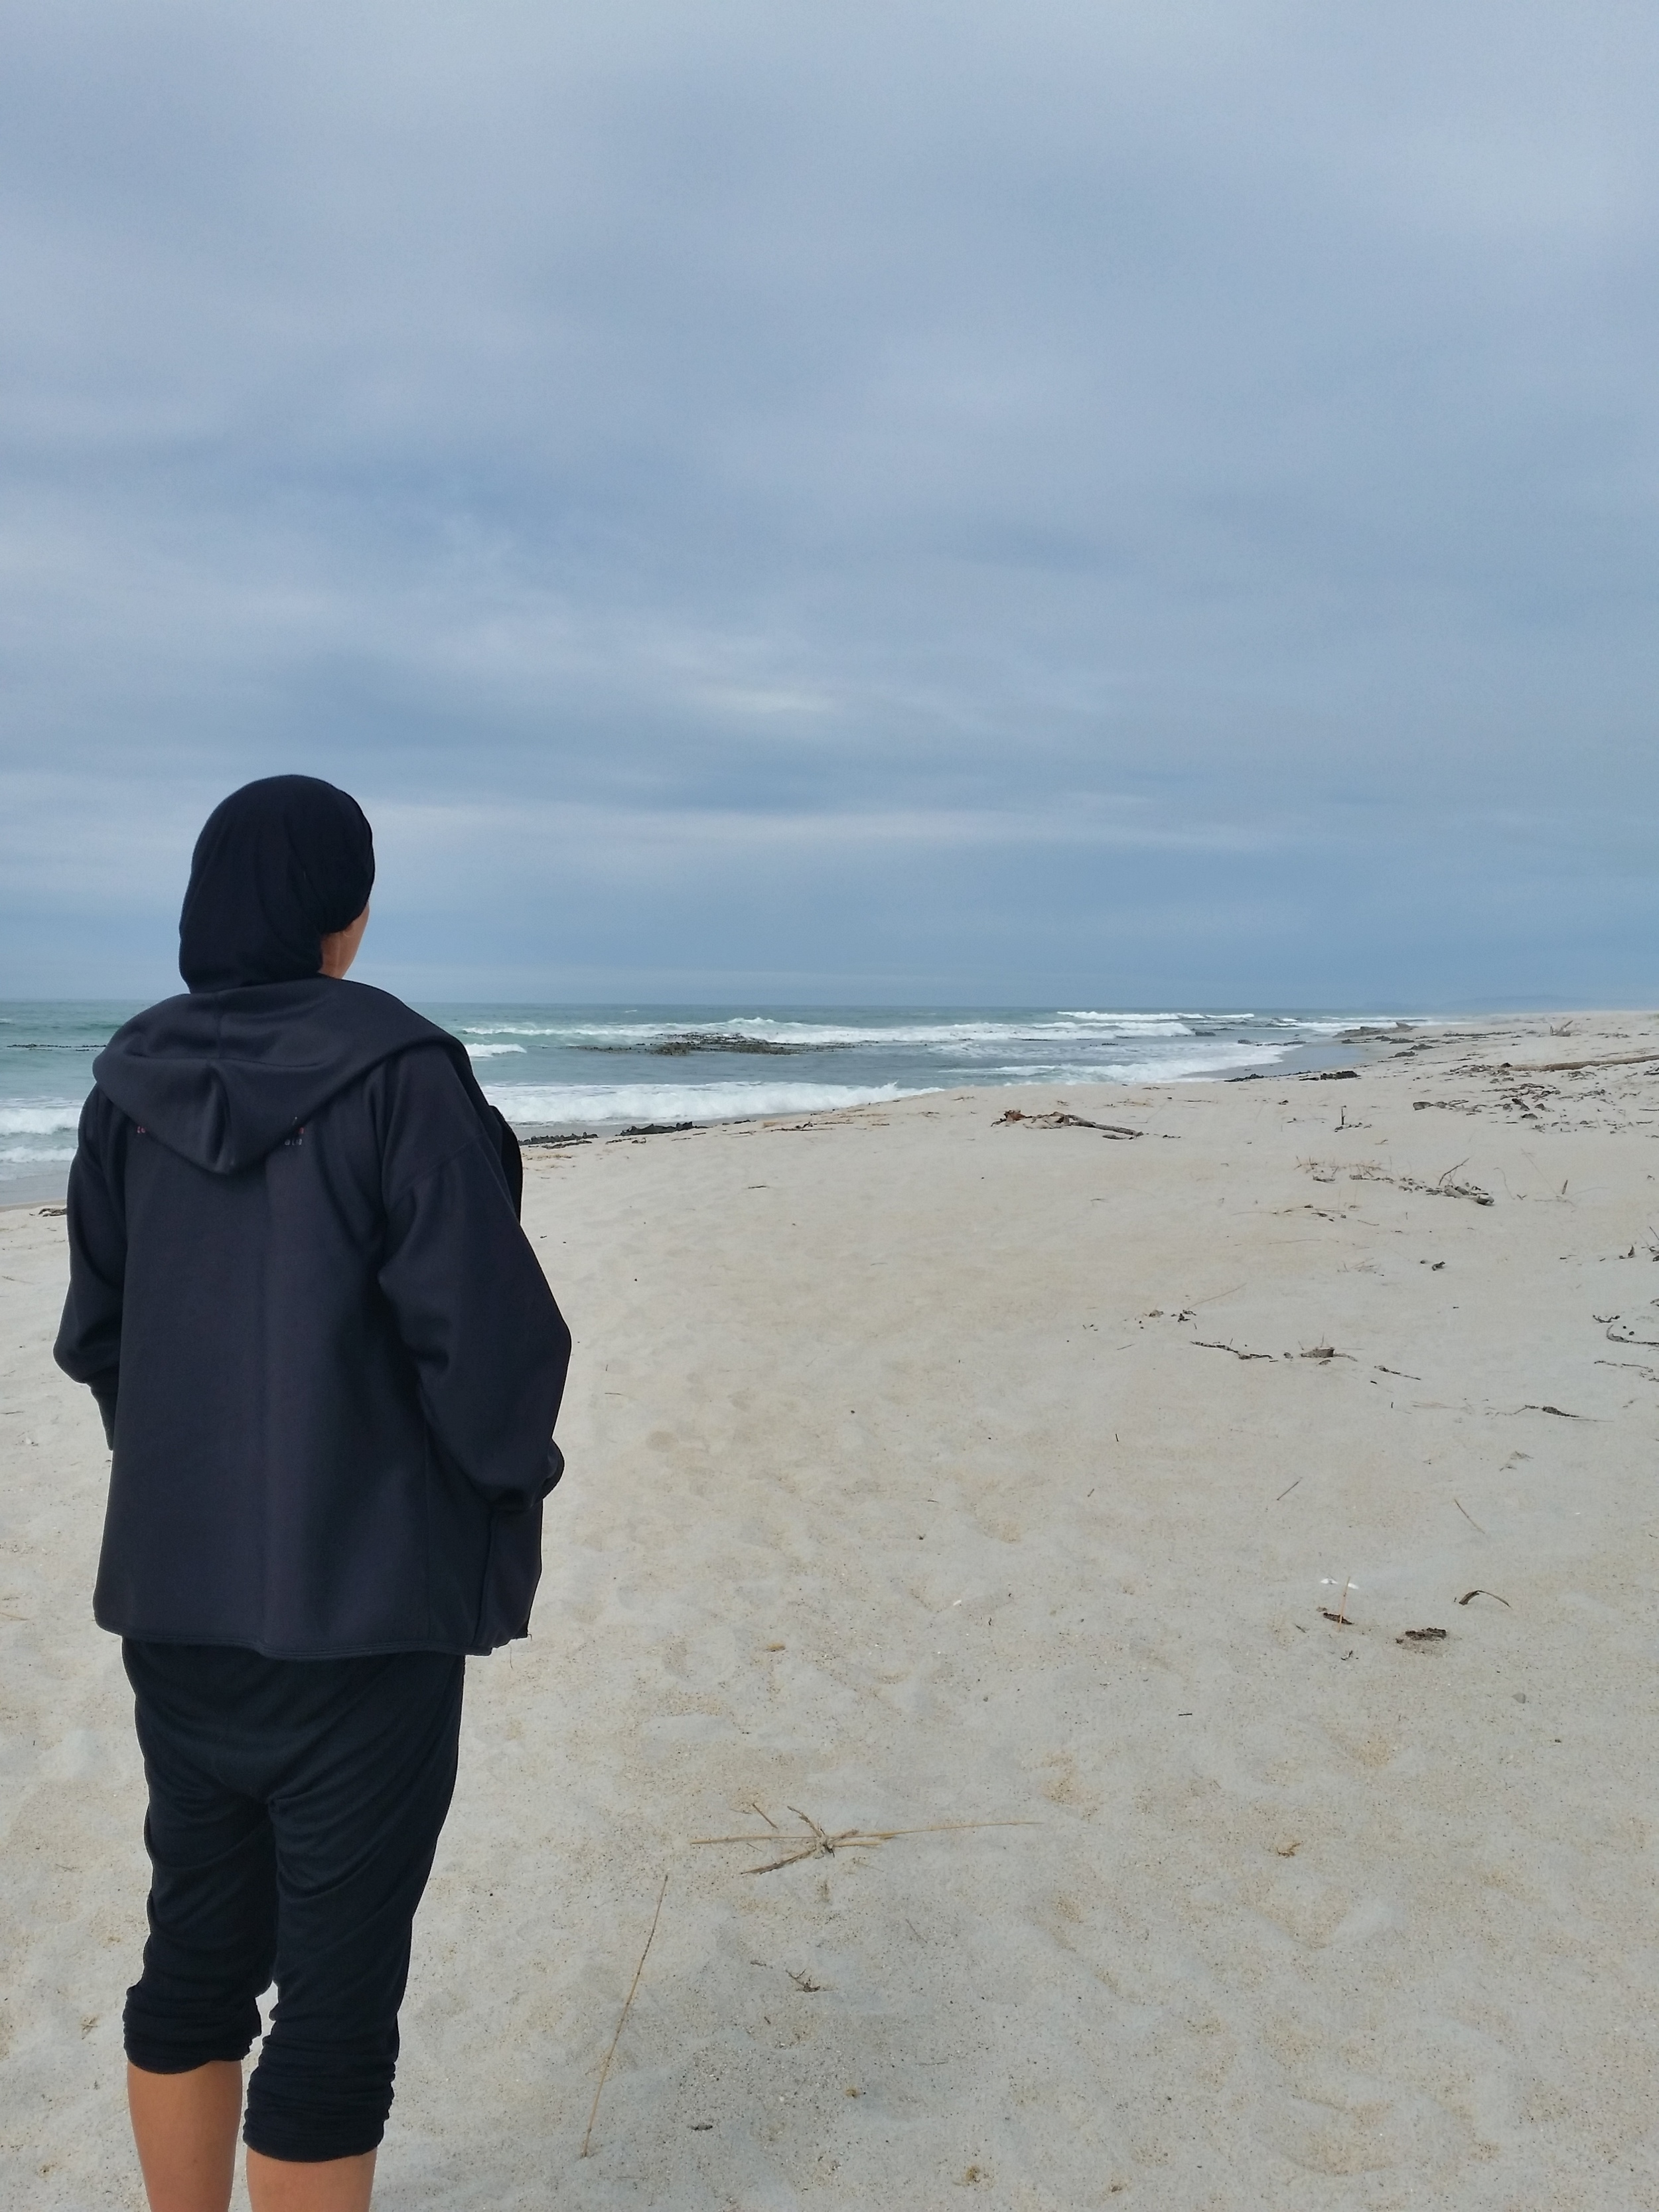 Surveying the waves